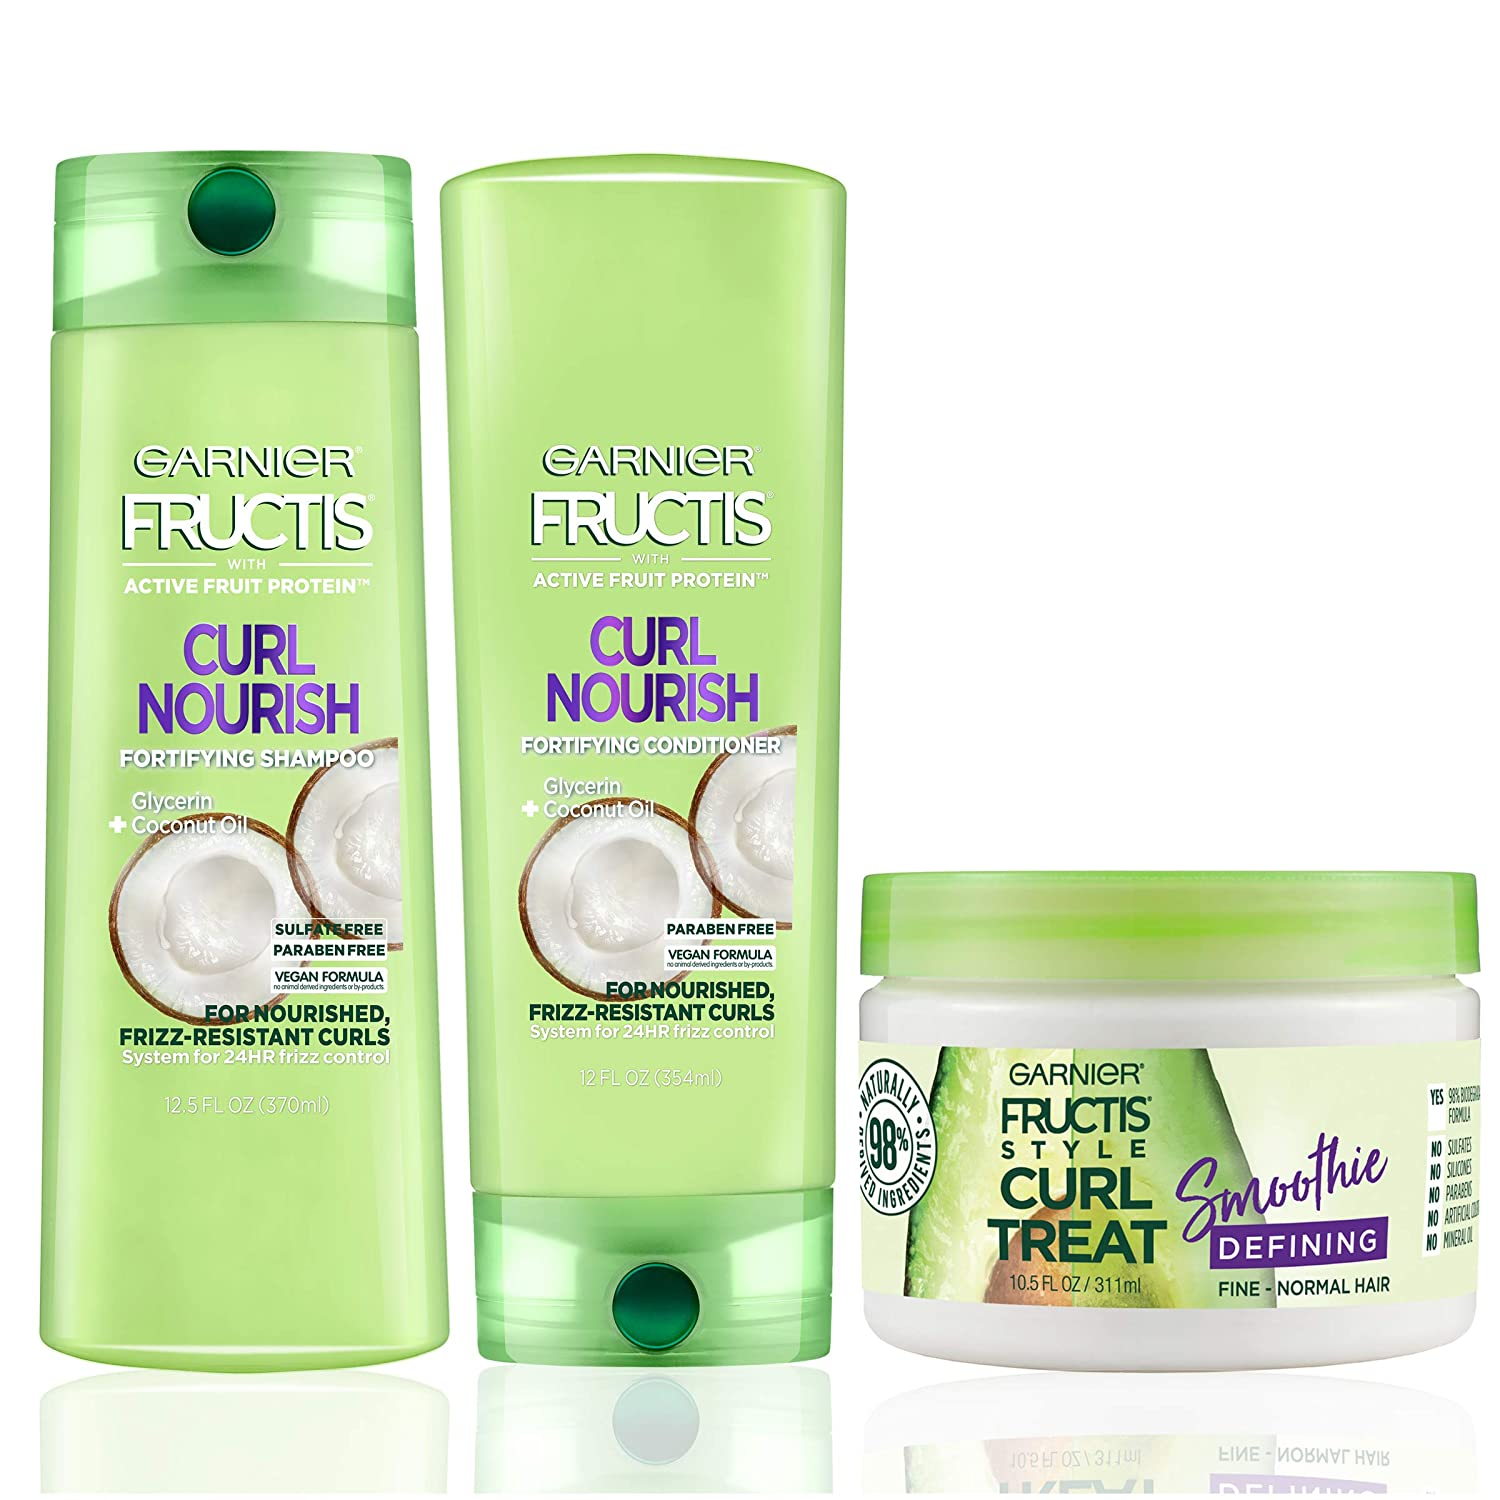 Garnier Hair Care Fructis Curl Nourish Shampoo, Conditioner, & Natural Styling Curl Treat Smoothie, Nourish for Frizz Resistant Curls, Frizz Free up to 24 Hours, Paraben Free,1 Kit